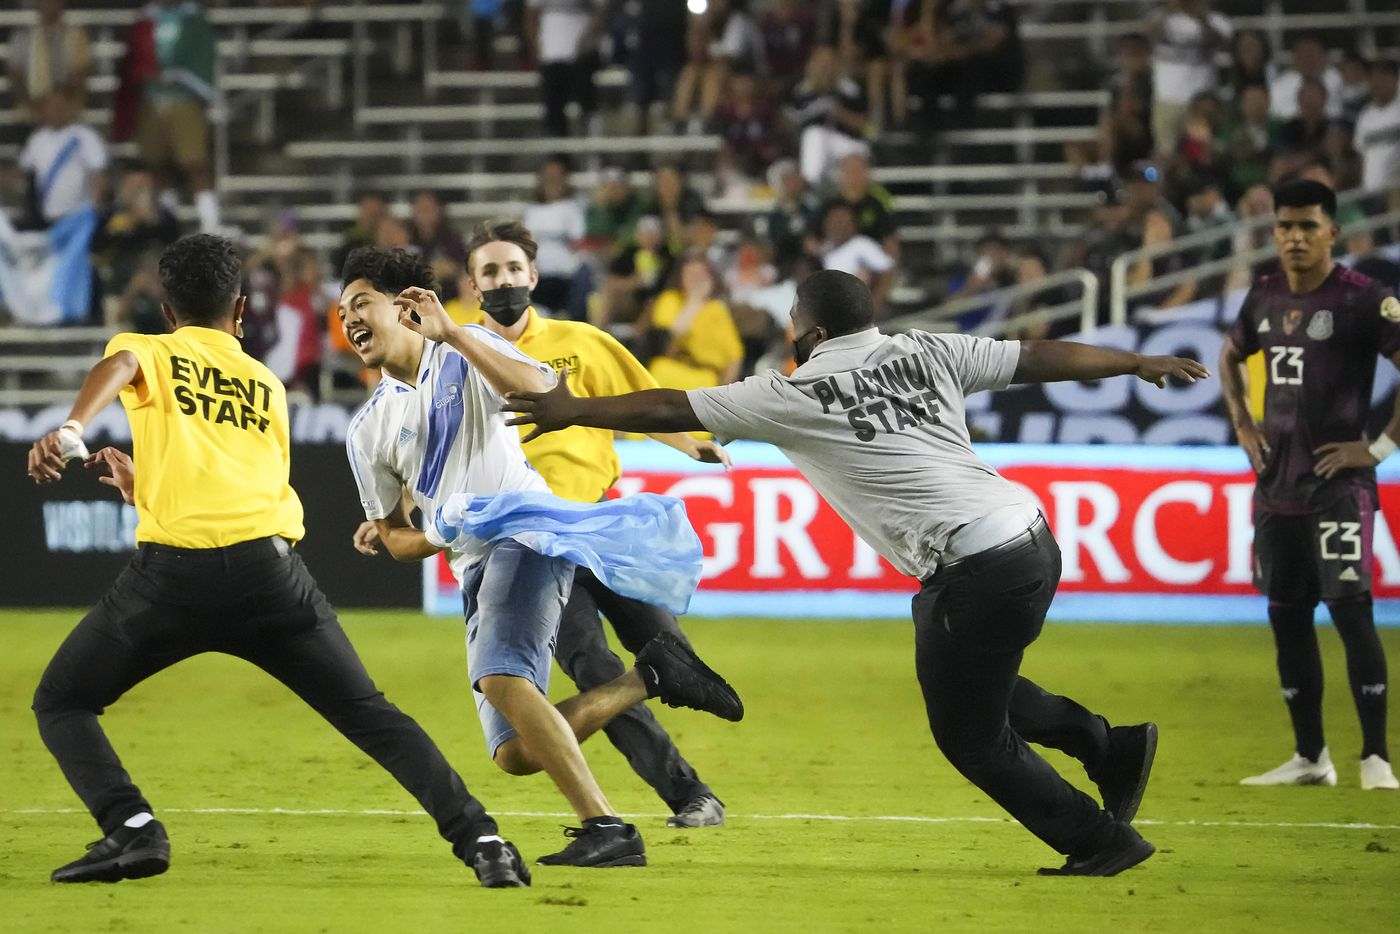 Security guards chase a fan carrying a Guatemala flag as he runs onto the field past Mexico midfielder Jesús Gallardo (23) during the second half of a CONCACAF Gold Cup Group A soccer match at the Cotton Bowl on Wednesday, July 14, 2021, in Dallas.